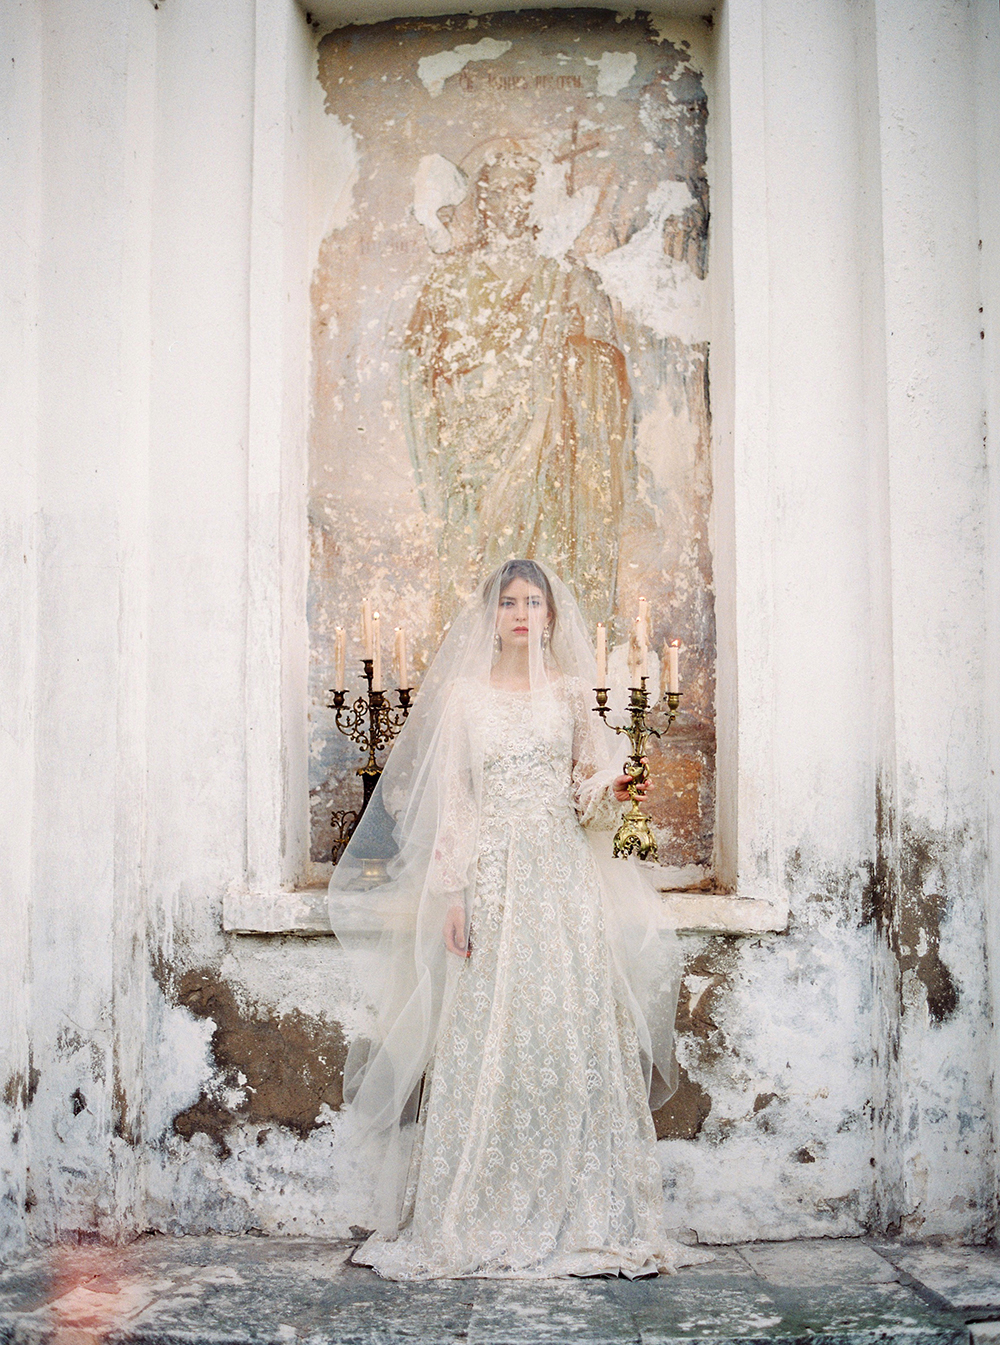 Russian Swan Princess Bridal Inspiration - photo by Zhenya Savina http://ruffledblog.com/russian-swan-princess-bridal-inspiration